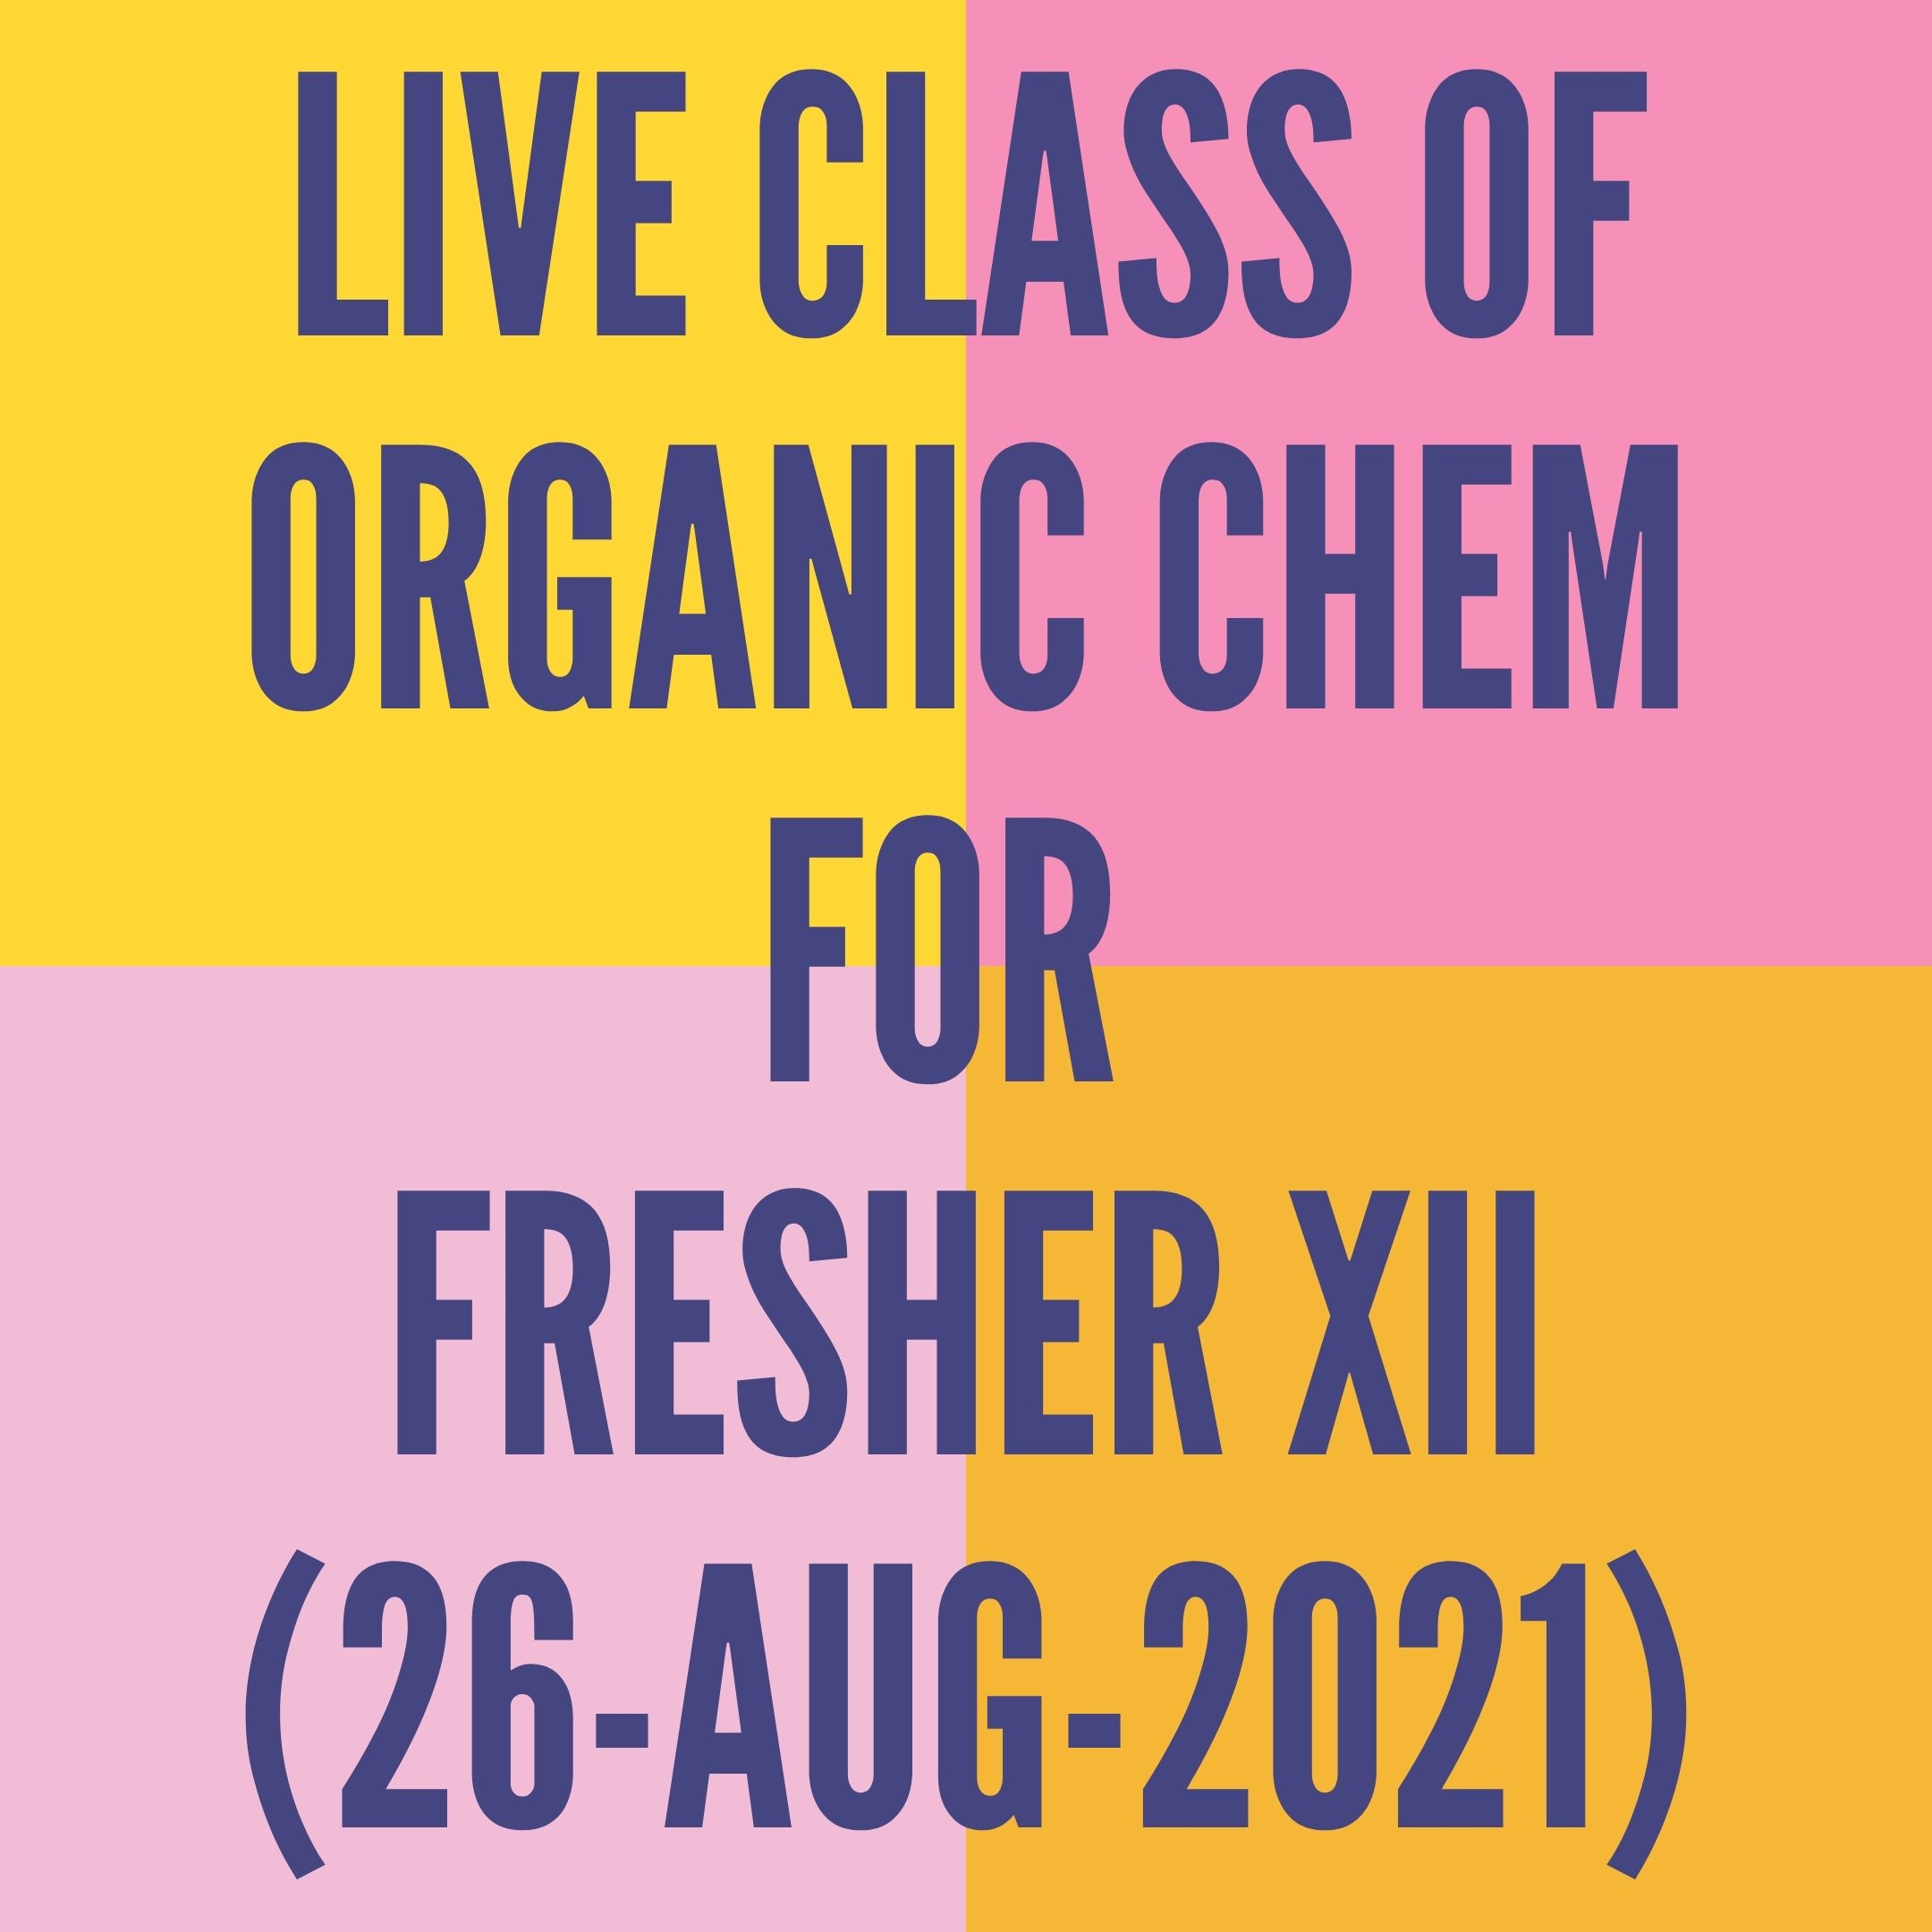 LIVE CLASS OF ORGANIC CHEMISTRY FOR FRESHER XII (26-AUG-2021) ALCOHOL, PHENOL & ETHER